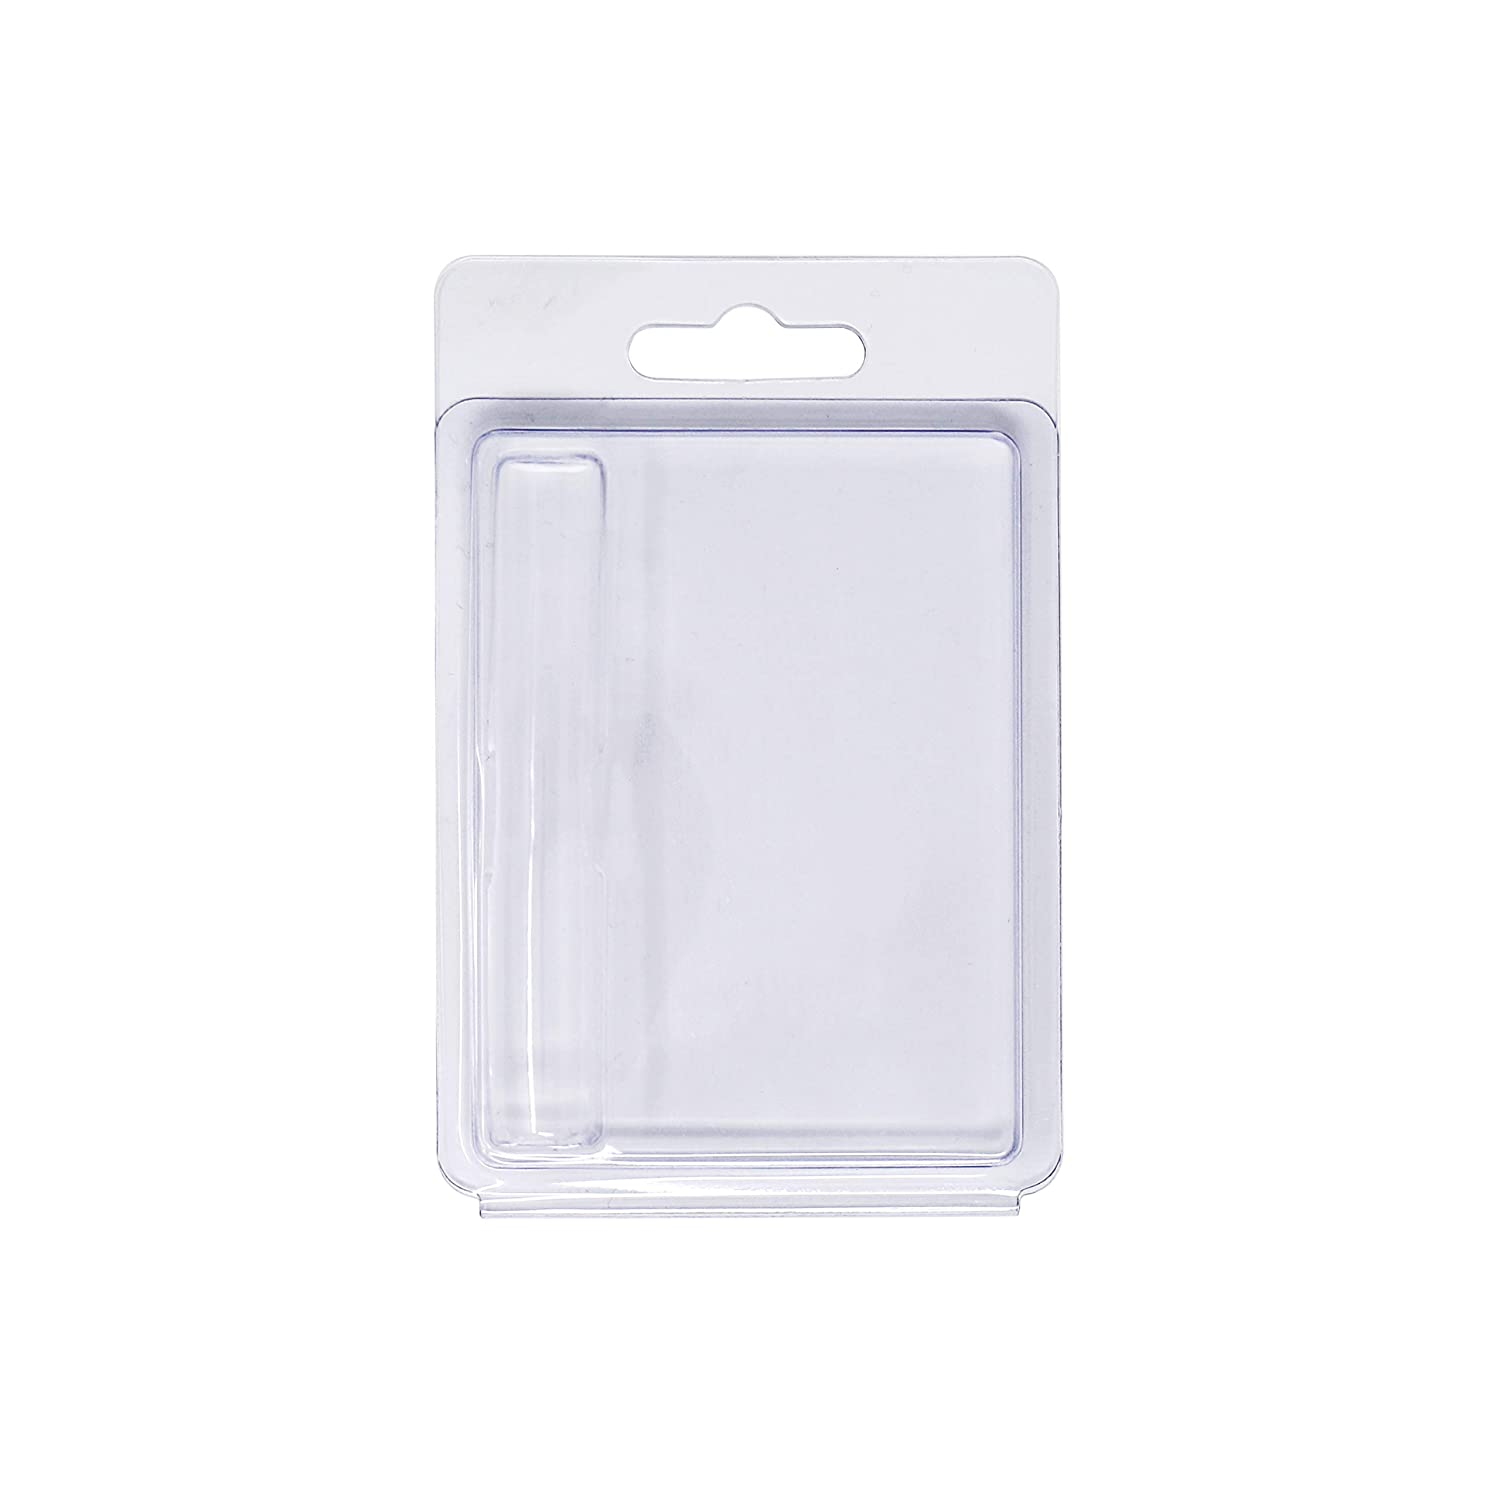 Clamshell Blister Packaging for .5ml & 1ml Cartridges - PACKAGING ONLY - Variety Options (0.5ml 25 Pack) Triple S Distribution